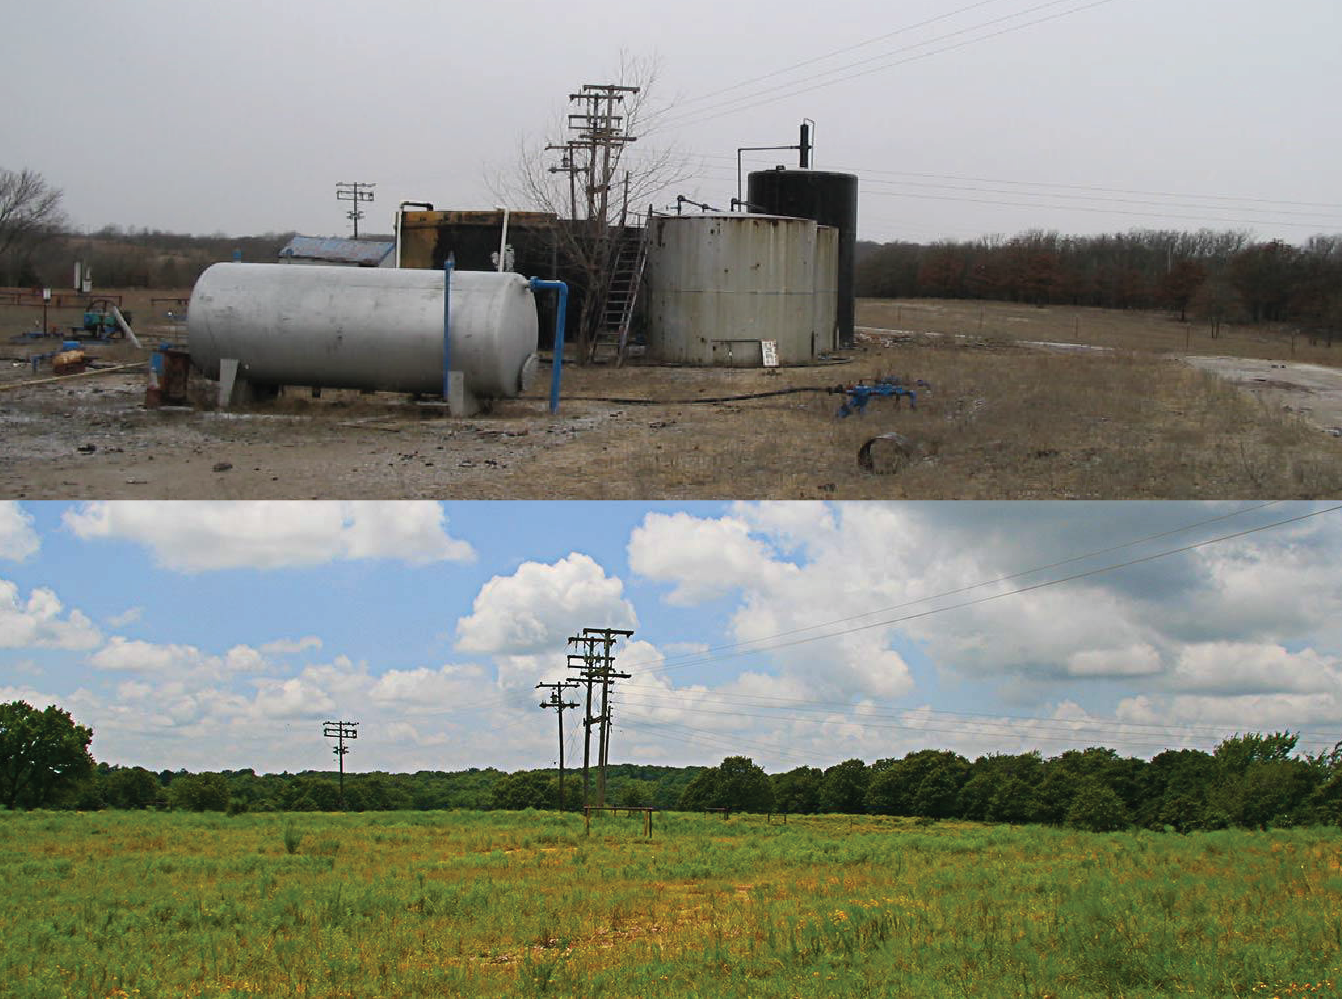 An abandoned well site in Oklahoma before (top) and after (bottom) being remediated.